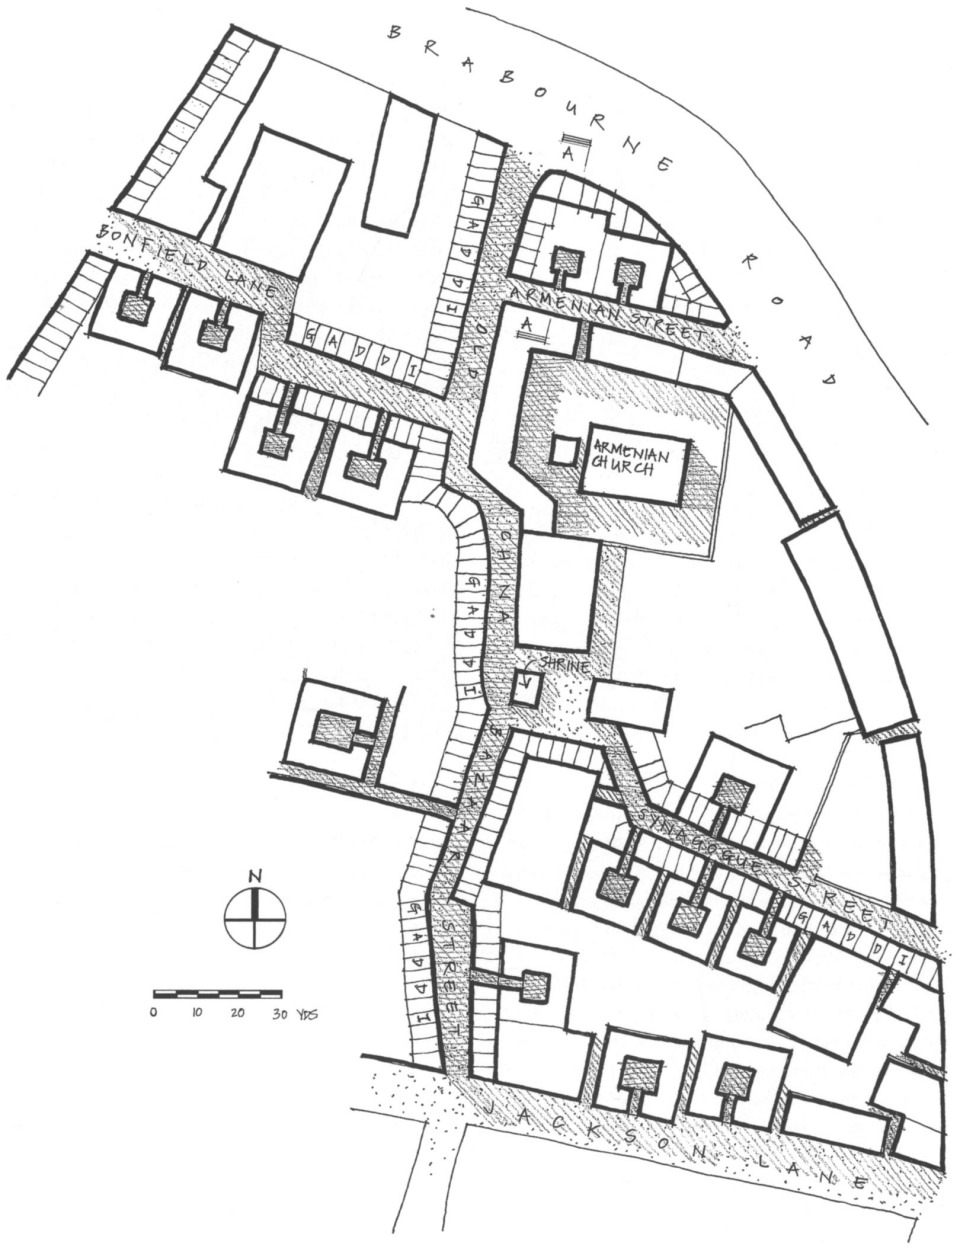 Plan of Old China Bazaar. (Surveyed by the author, April 2003.)